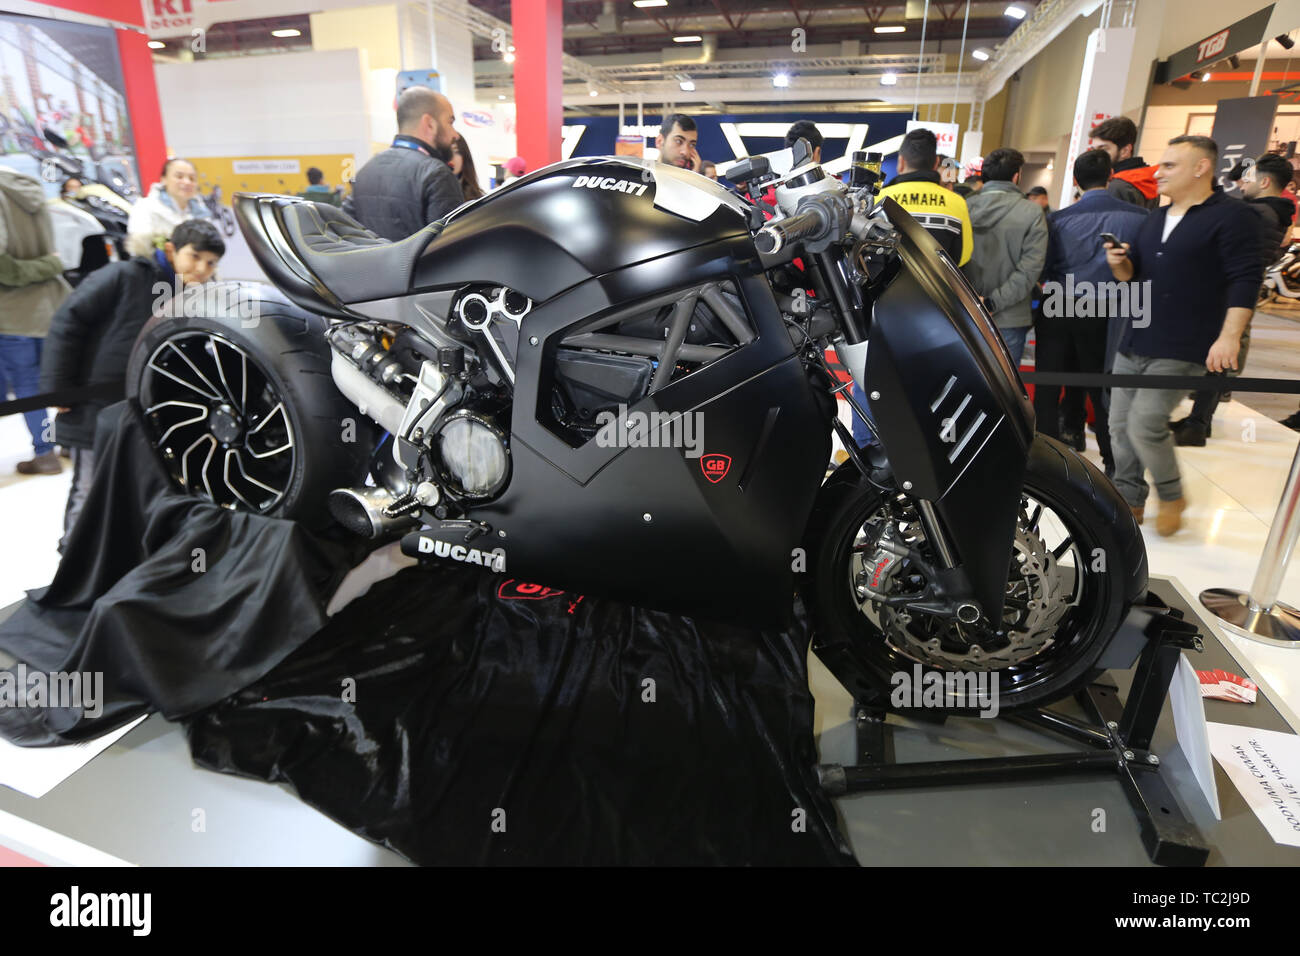 ISTANBUL, TURKEY - FEBRUARY 23, 2019: Ducati Motorcycle on display at Motobike Istanbul in Istanbul Exhibition Center - Stock Image